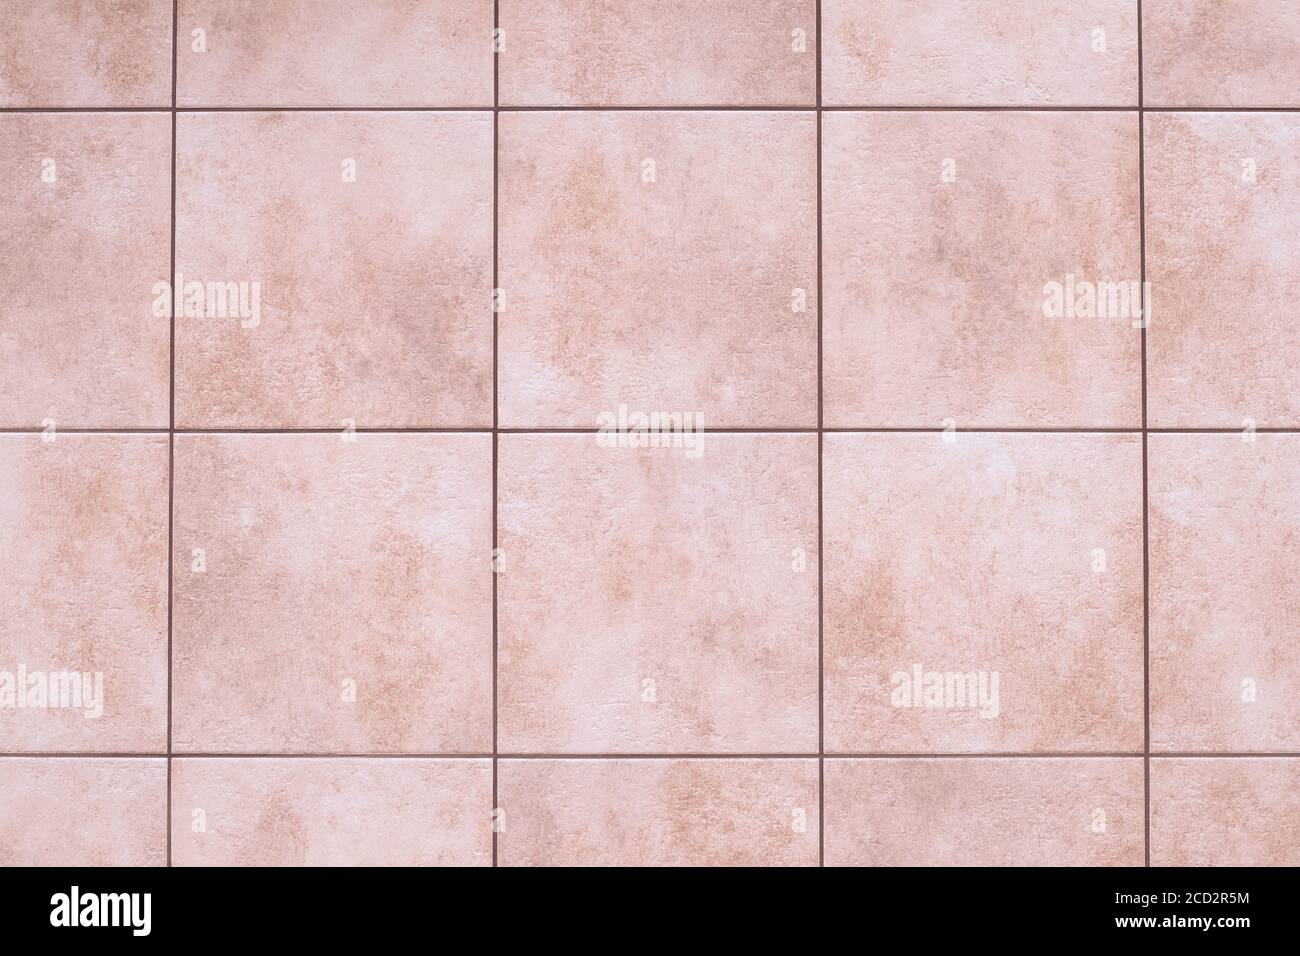 https www alamy com ceramic tile floor texture stone wall background square pattern smooth brown marble in the kitchen bathroom abstract grunge frame interior eleme image369470352 html